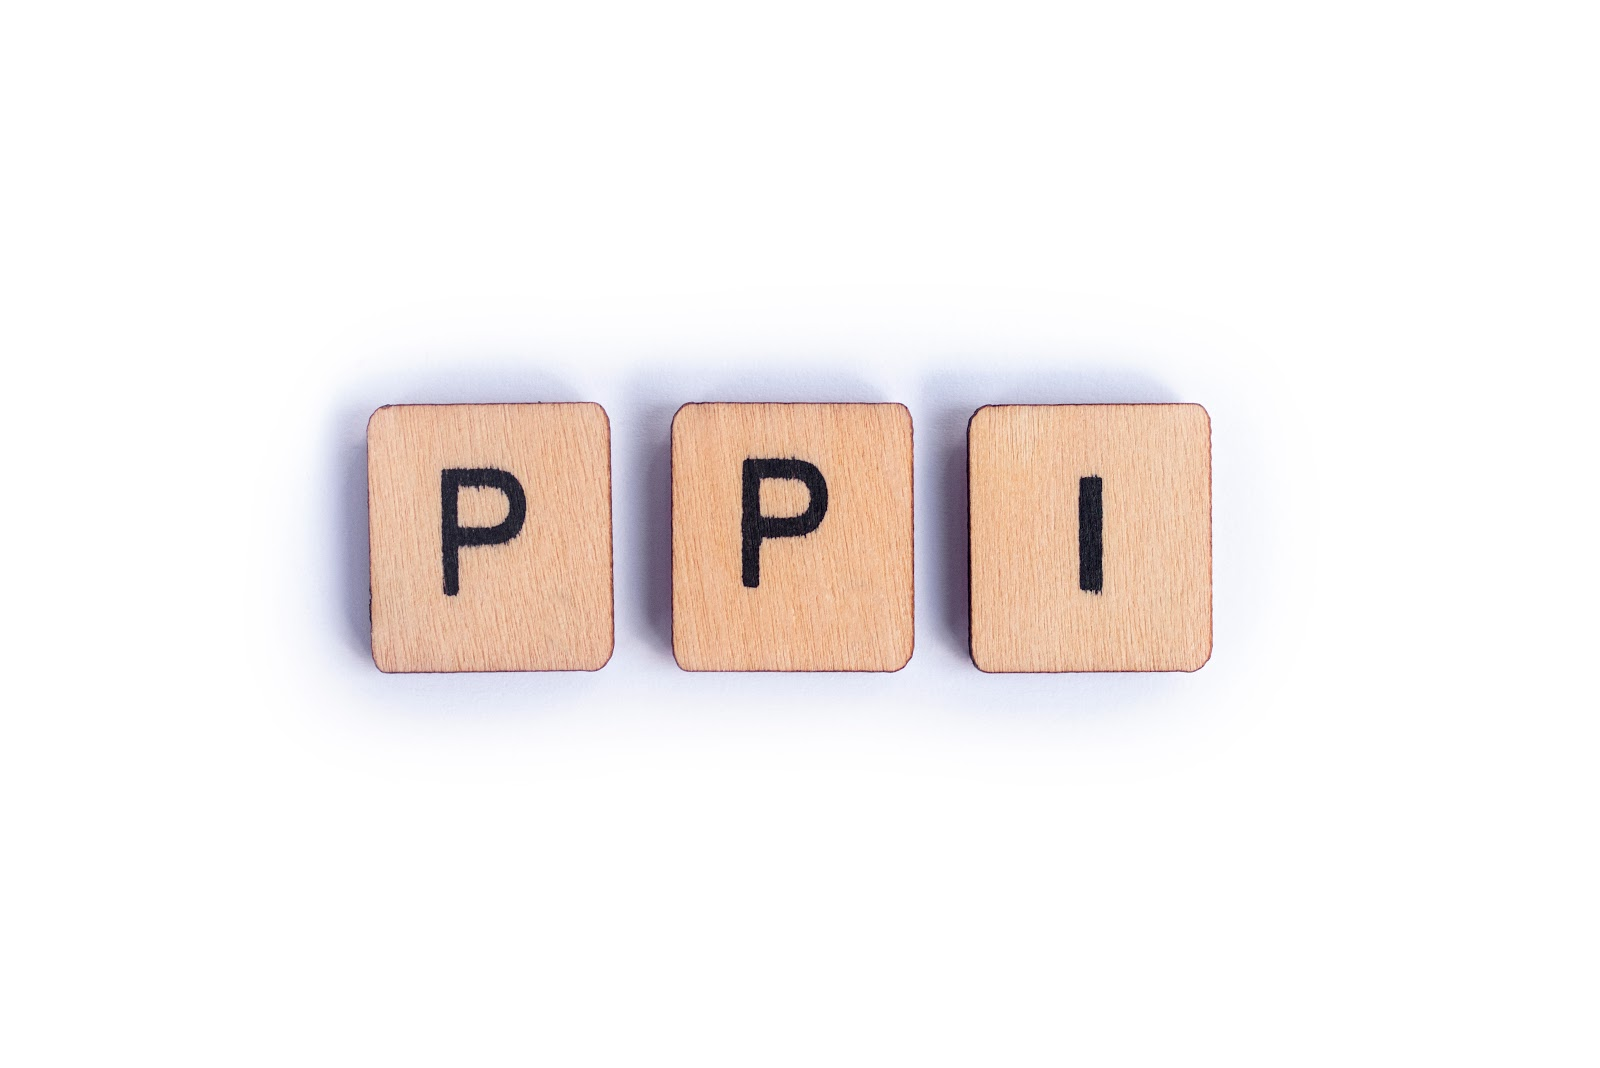 wooden blocks with the letters PPI on them